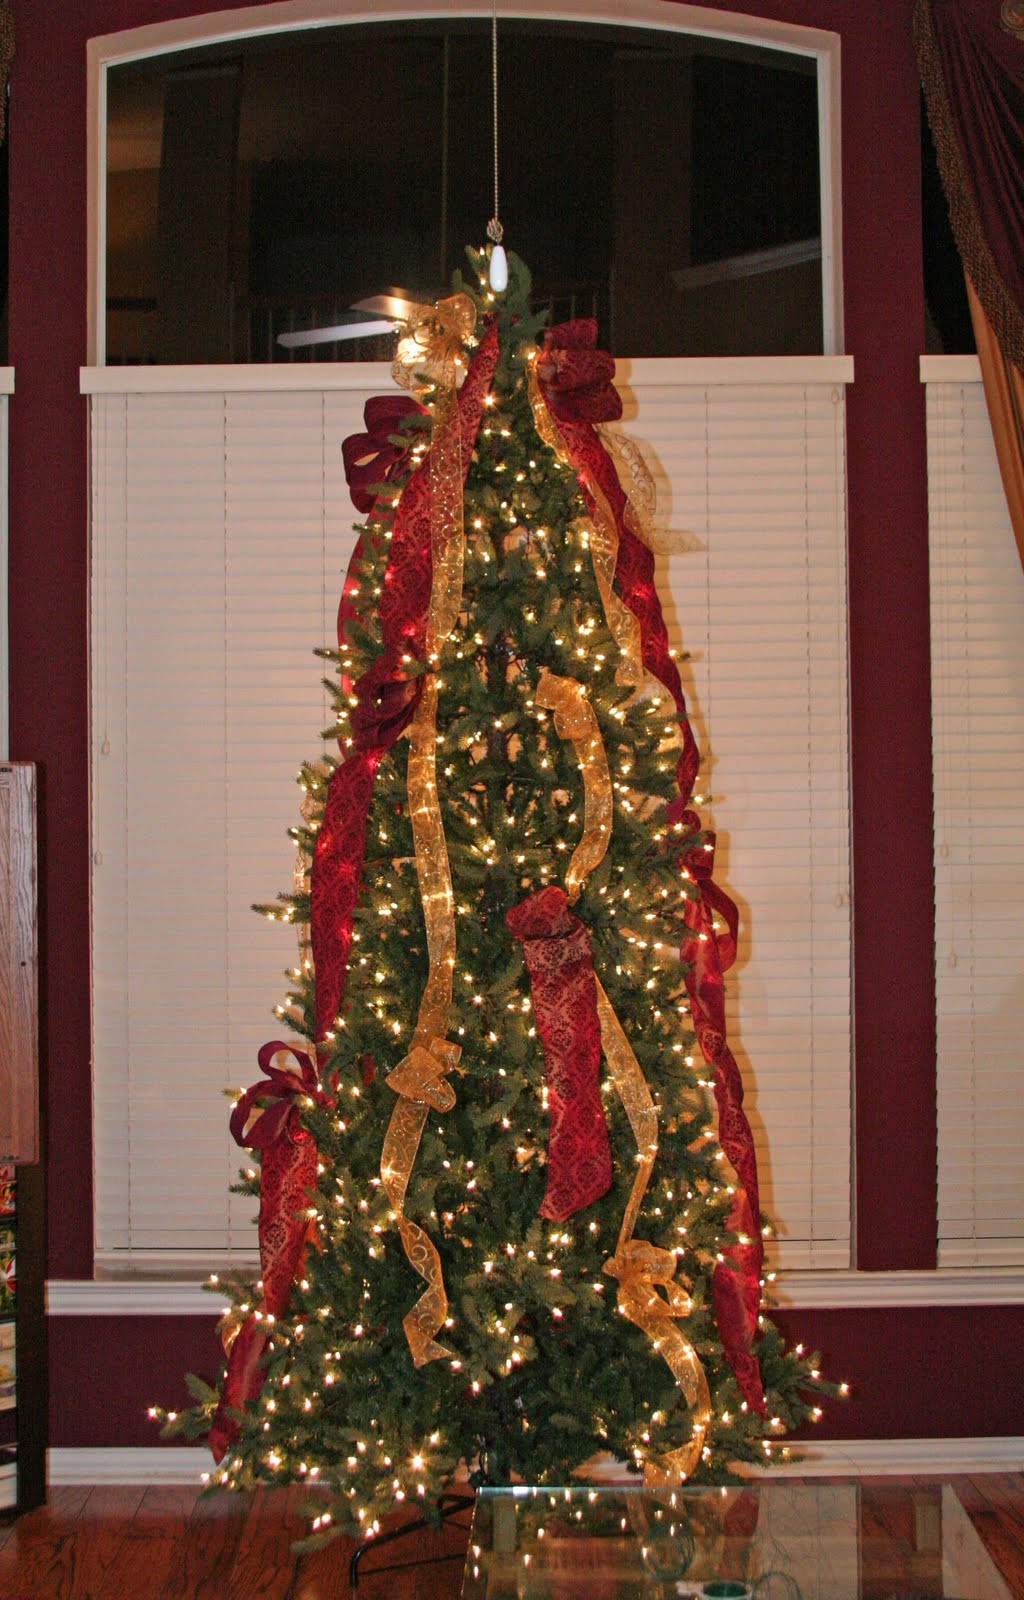 Madblooms Christmas Tree Decor 101